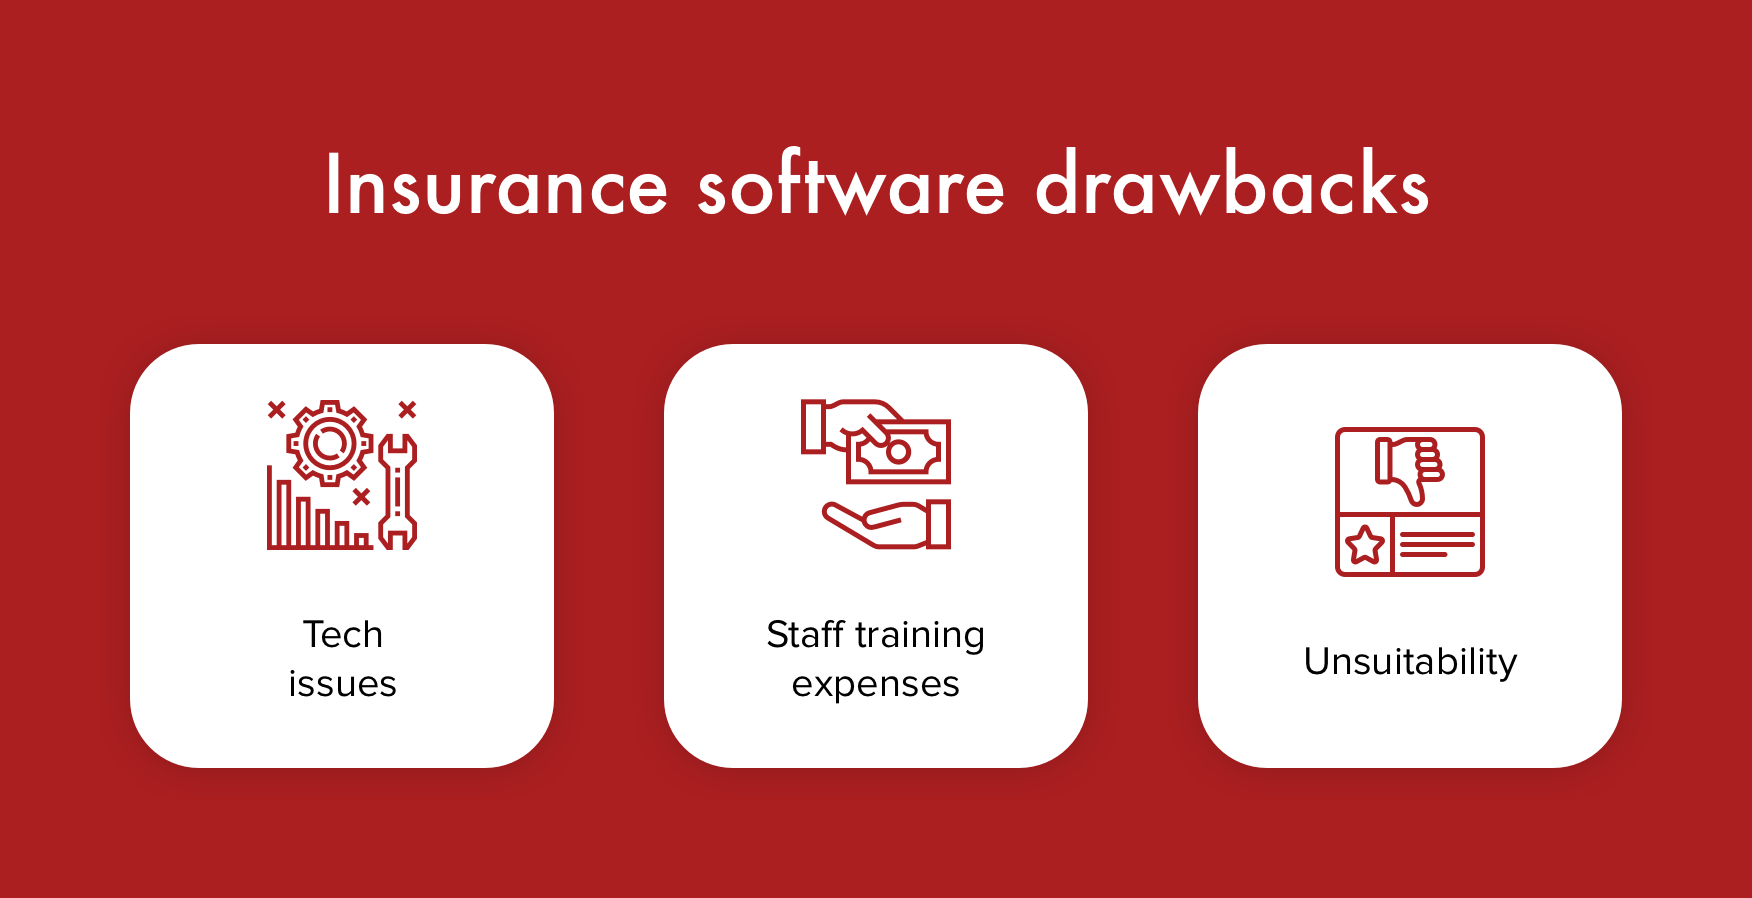 Insurance software drawbacks